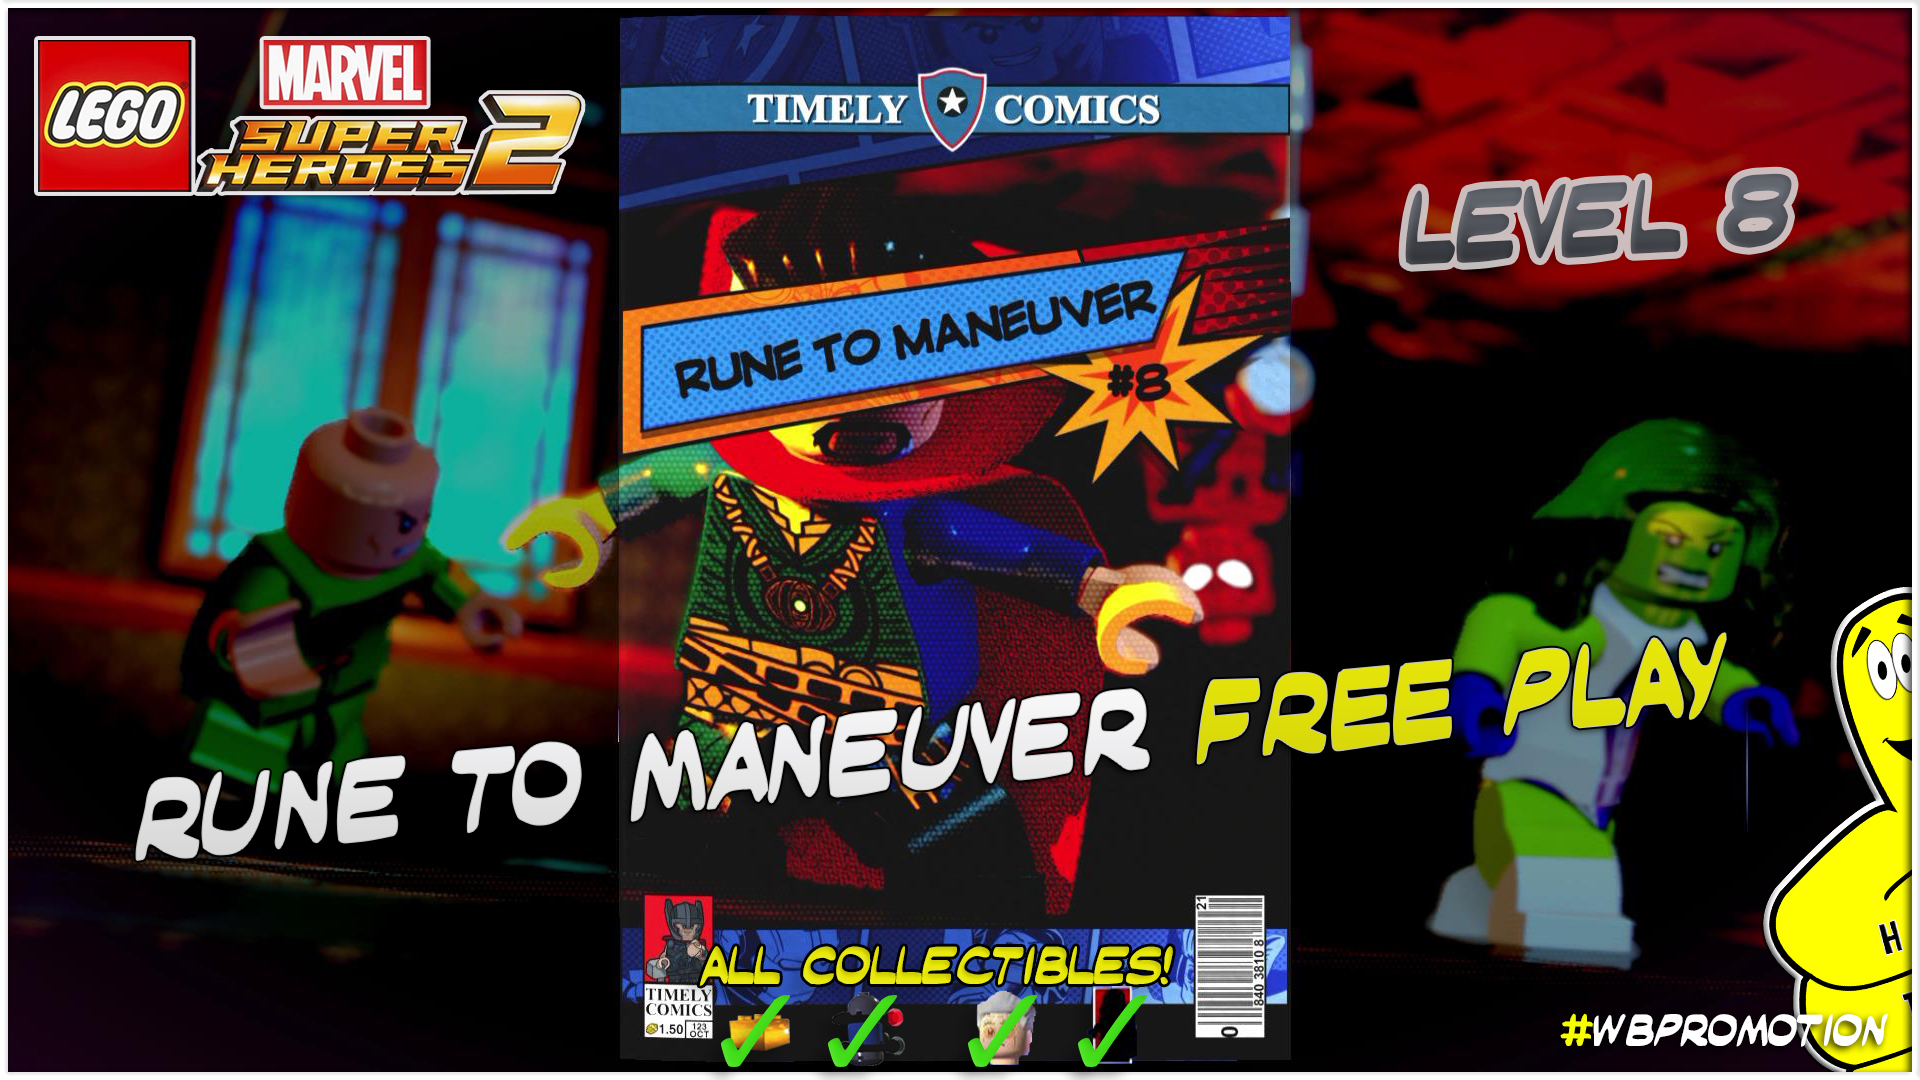 FREE PLAY Level 8 Thumb